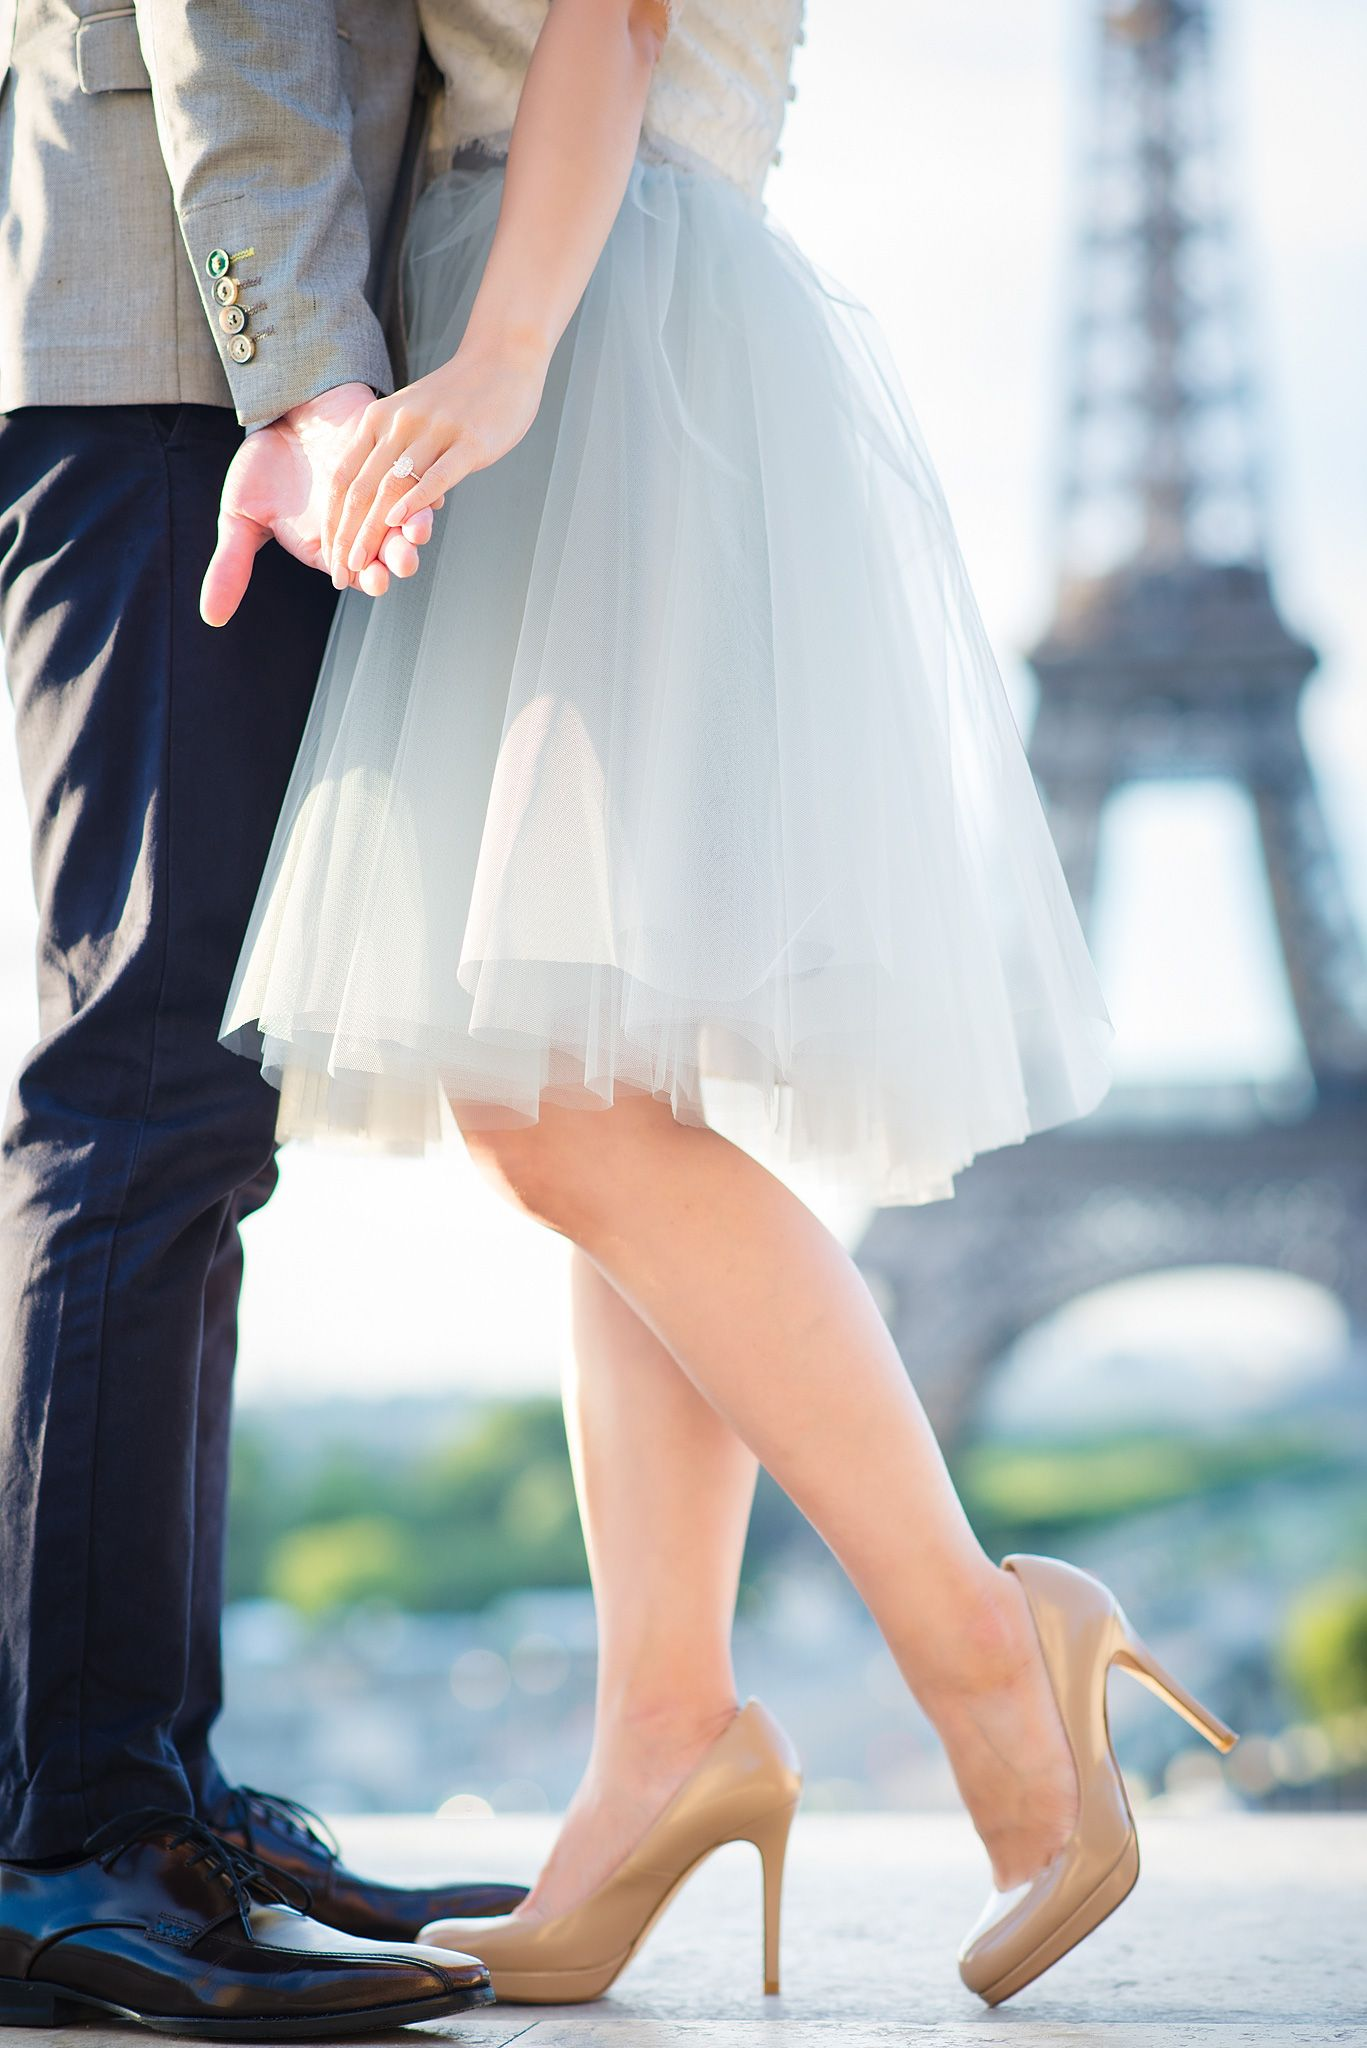 Hold my hand and I will go anywhere with you... #theparisphotographer…